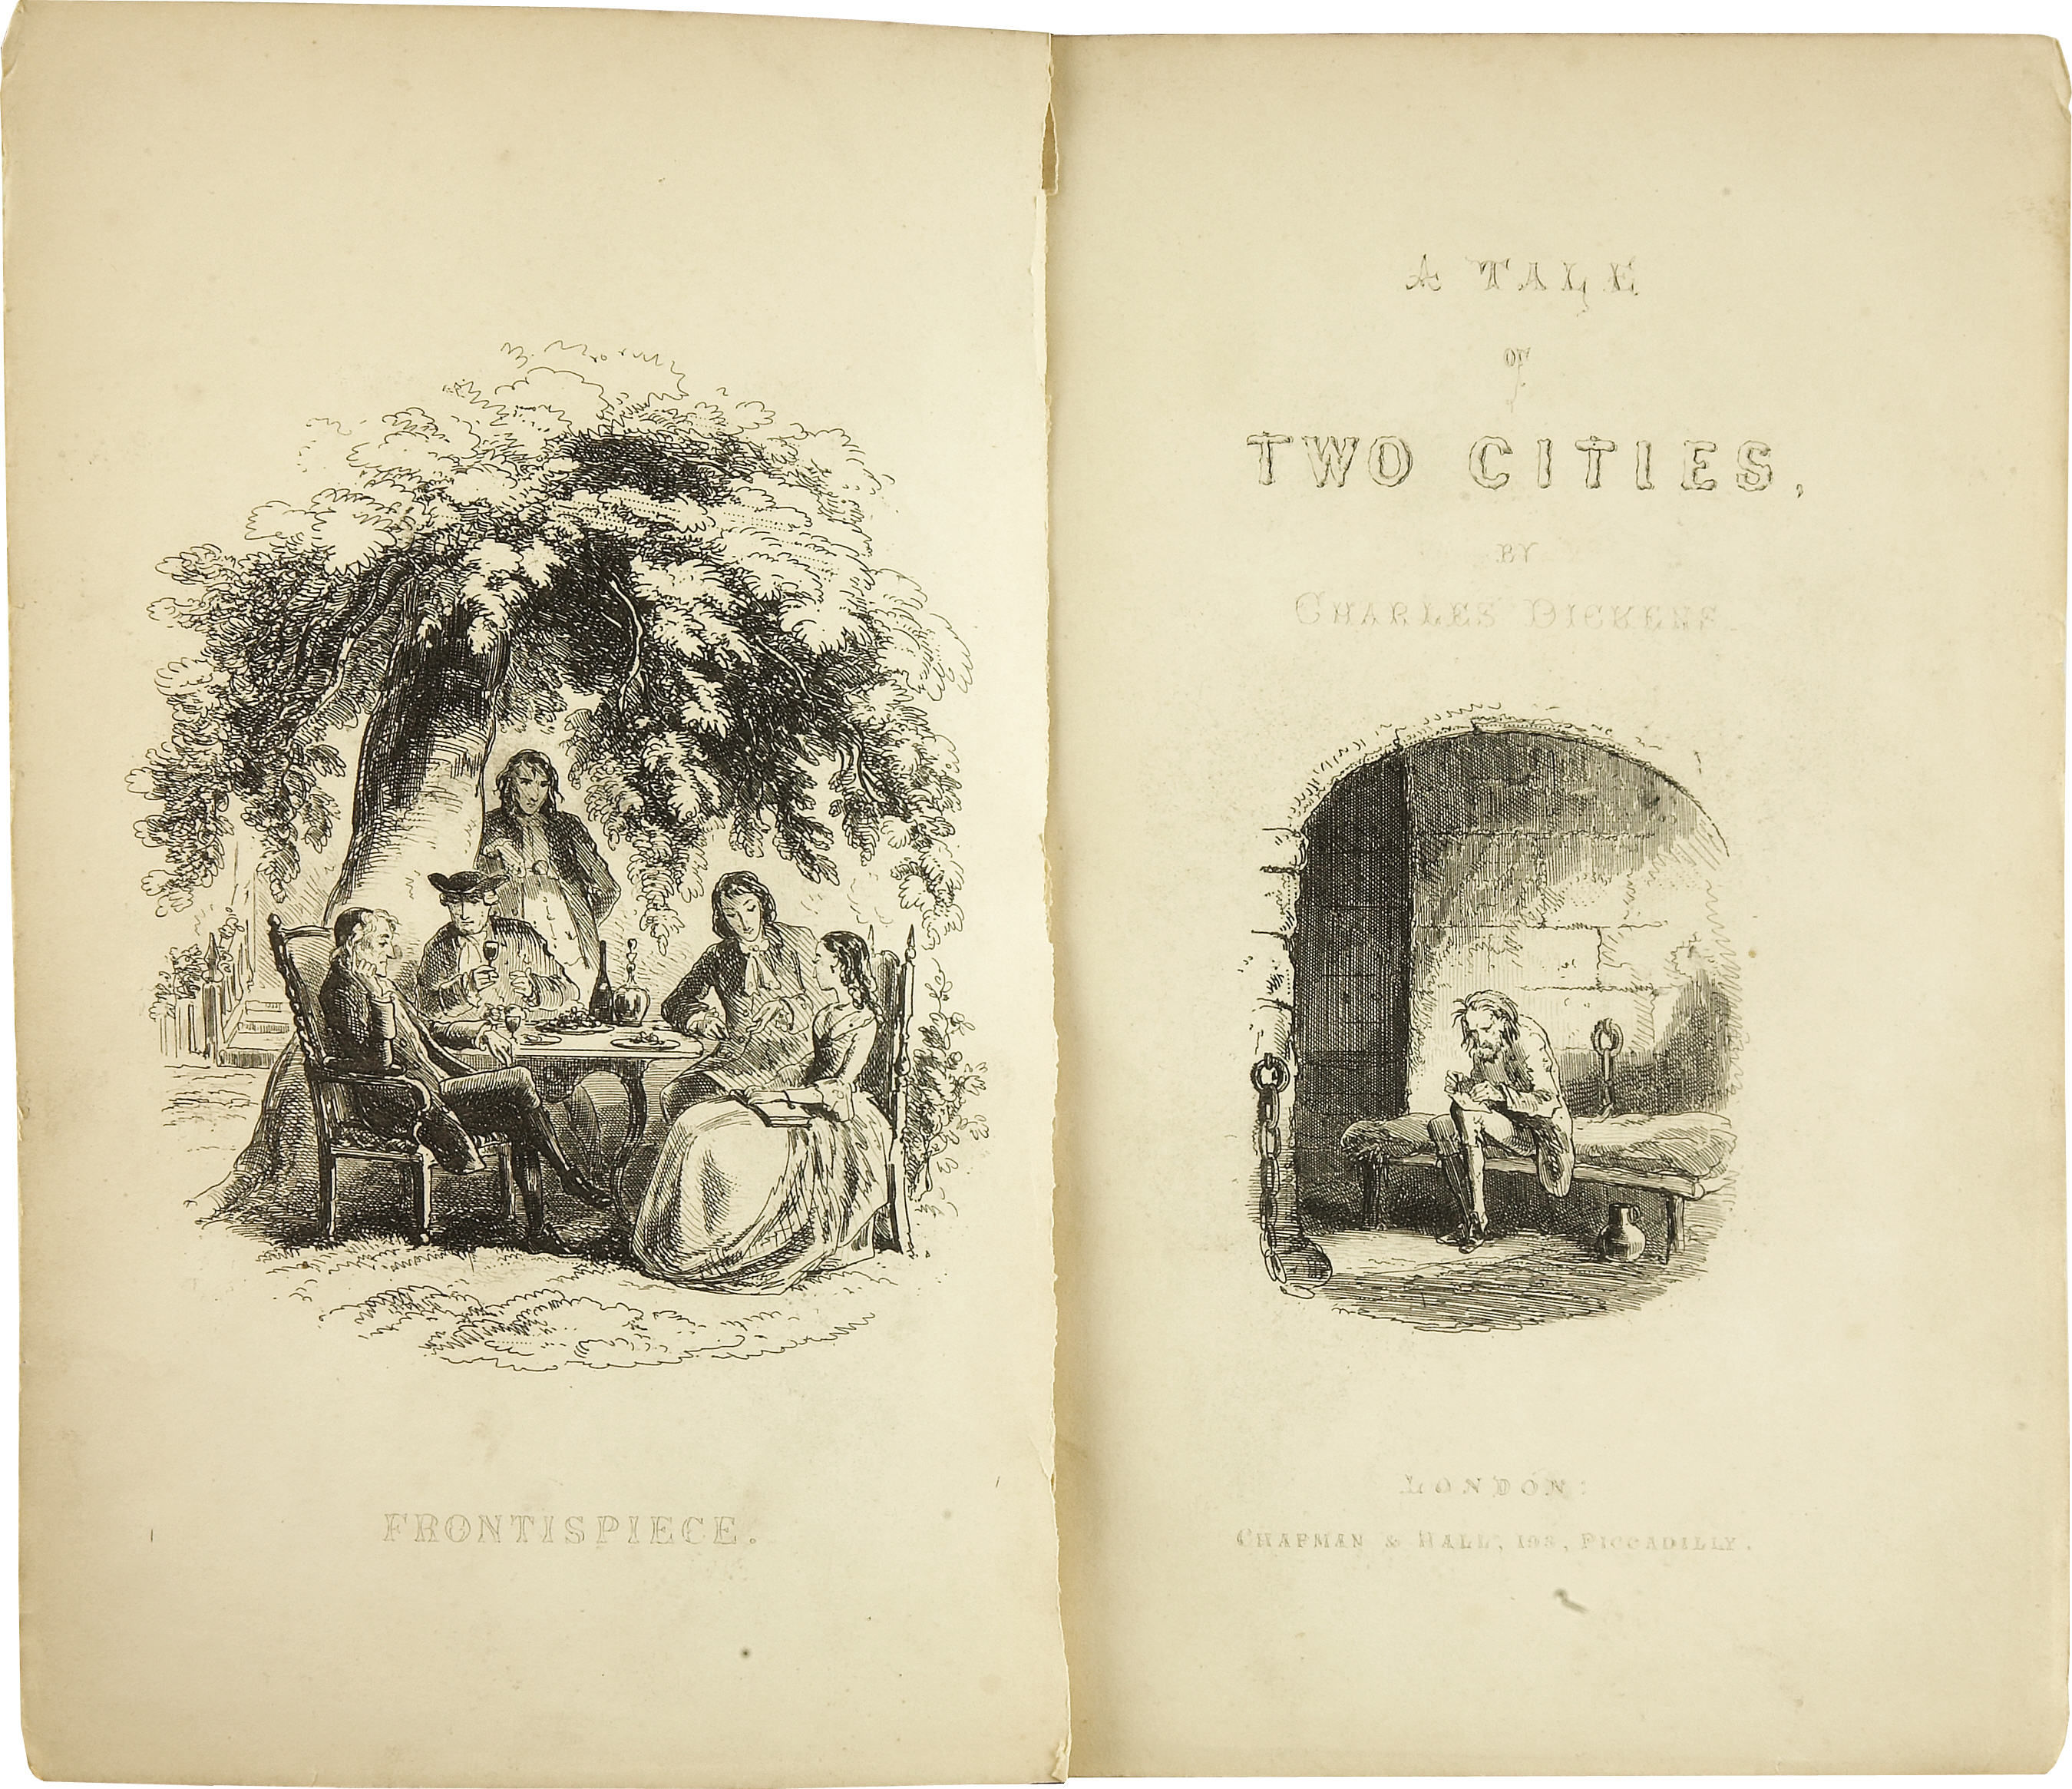 First line from A Tale of Two Cities